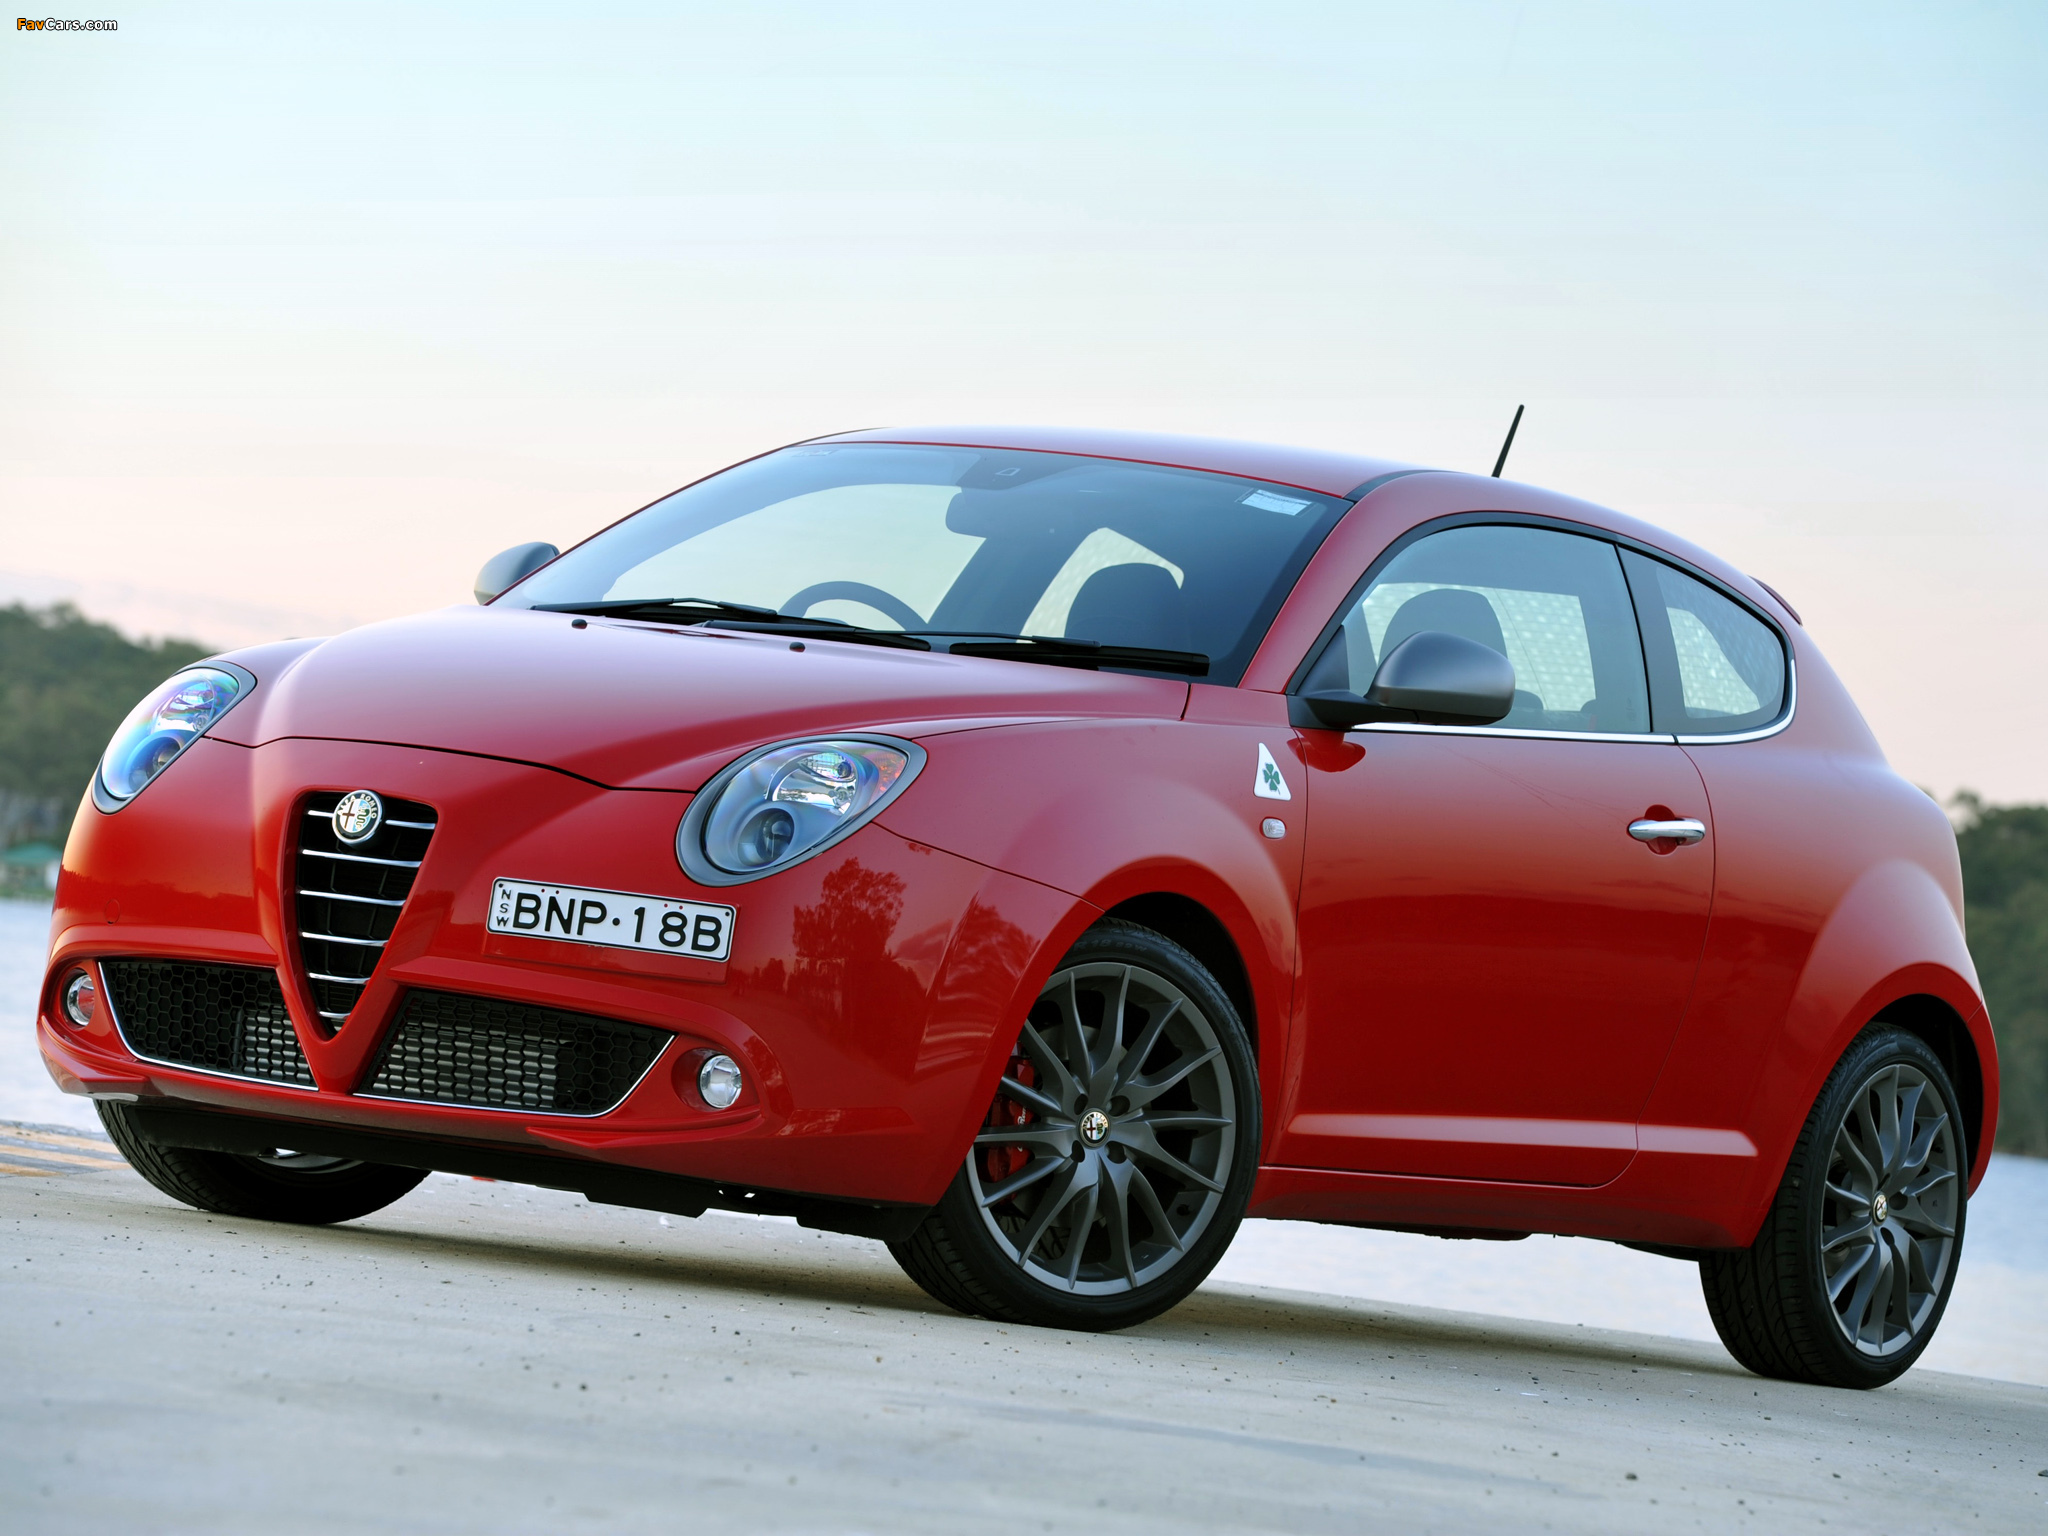 wallpapers of alfa romeo mito quadrifoglio verde au spec 955 2010 2011 2048x1536. Black Bedroom Furniture Sets. Home Design Ideas